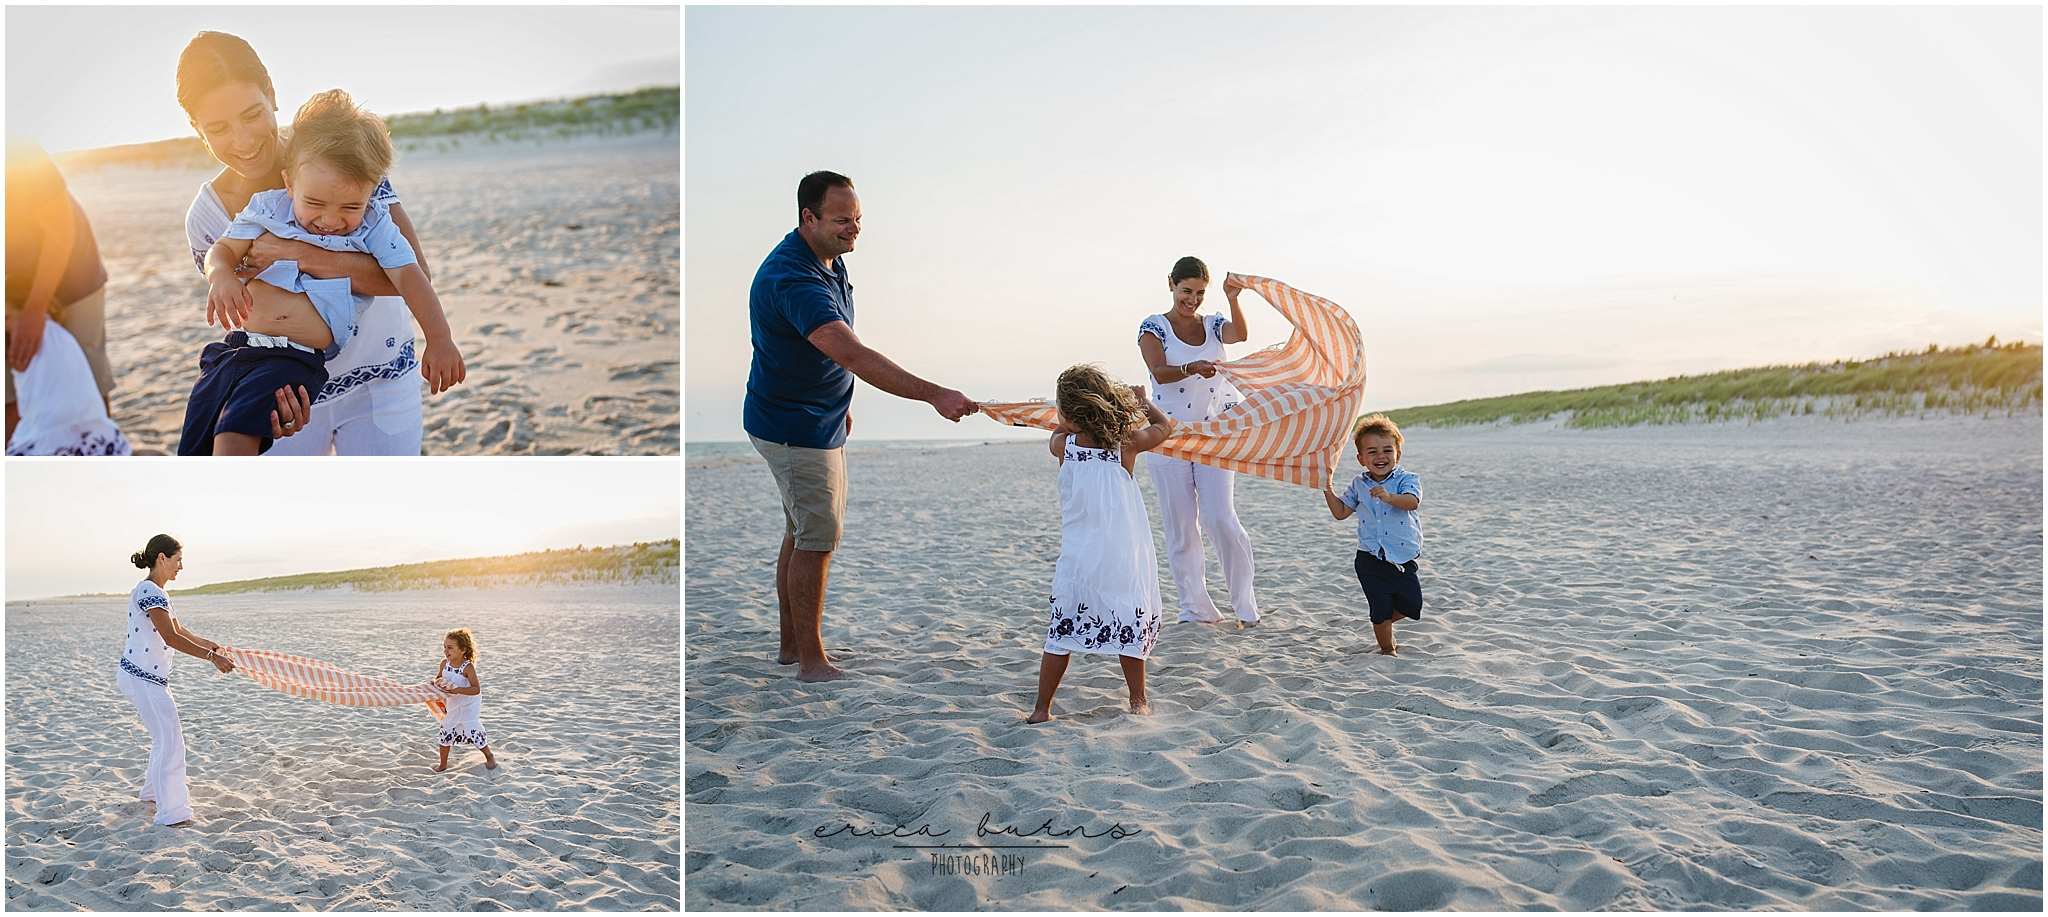 Erica Burns Photography | Long Island Photographer_0242.jpg